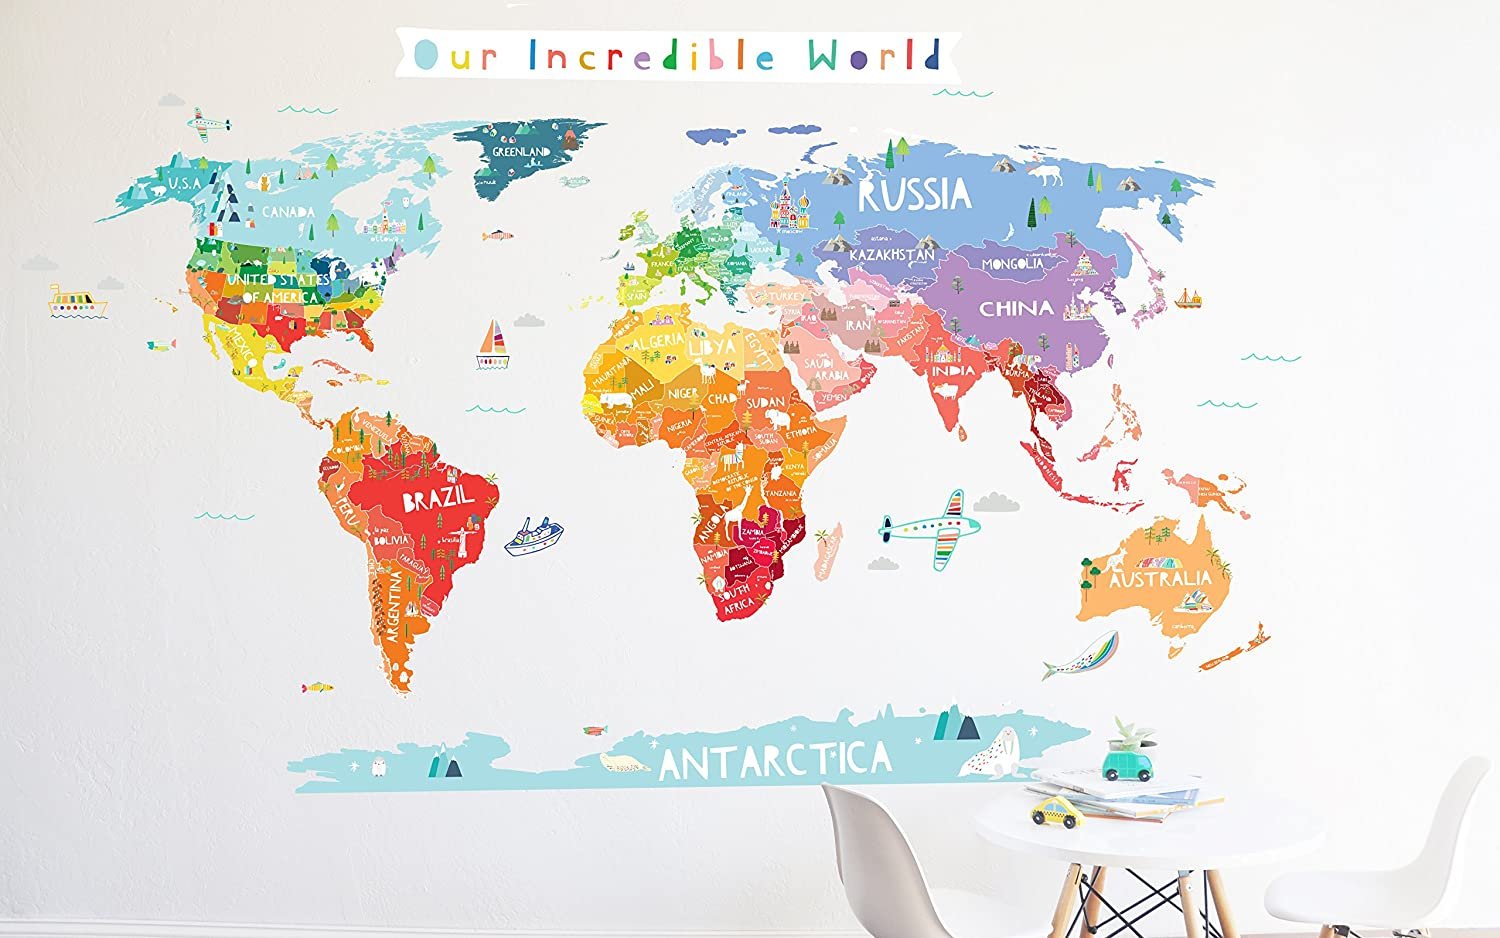 World Map Wall Decal Our Incredible World World Map Wall Decal With Personalization Stickers Wall Sticker Room Decor World Map Handmade